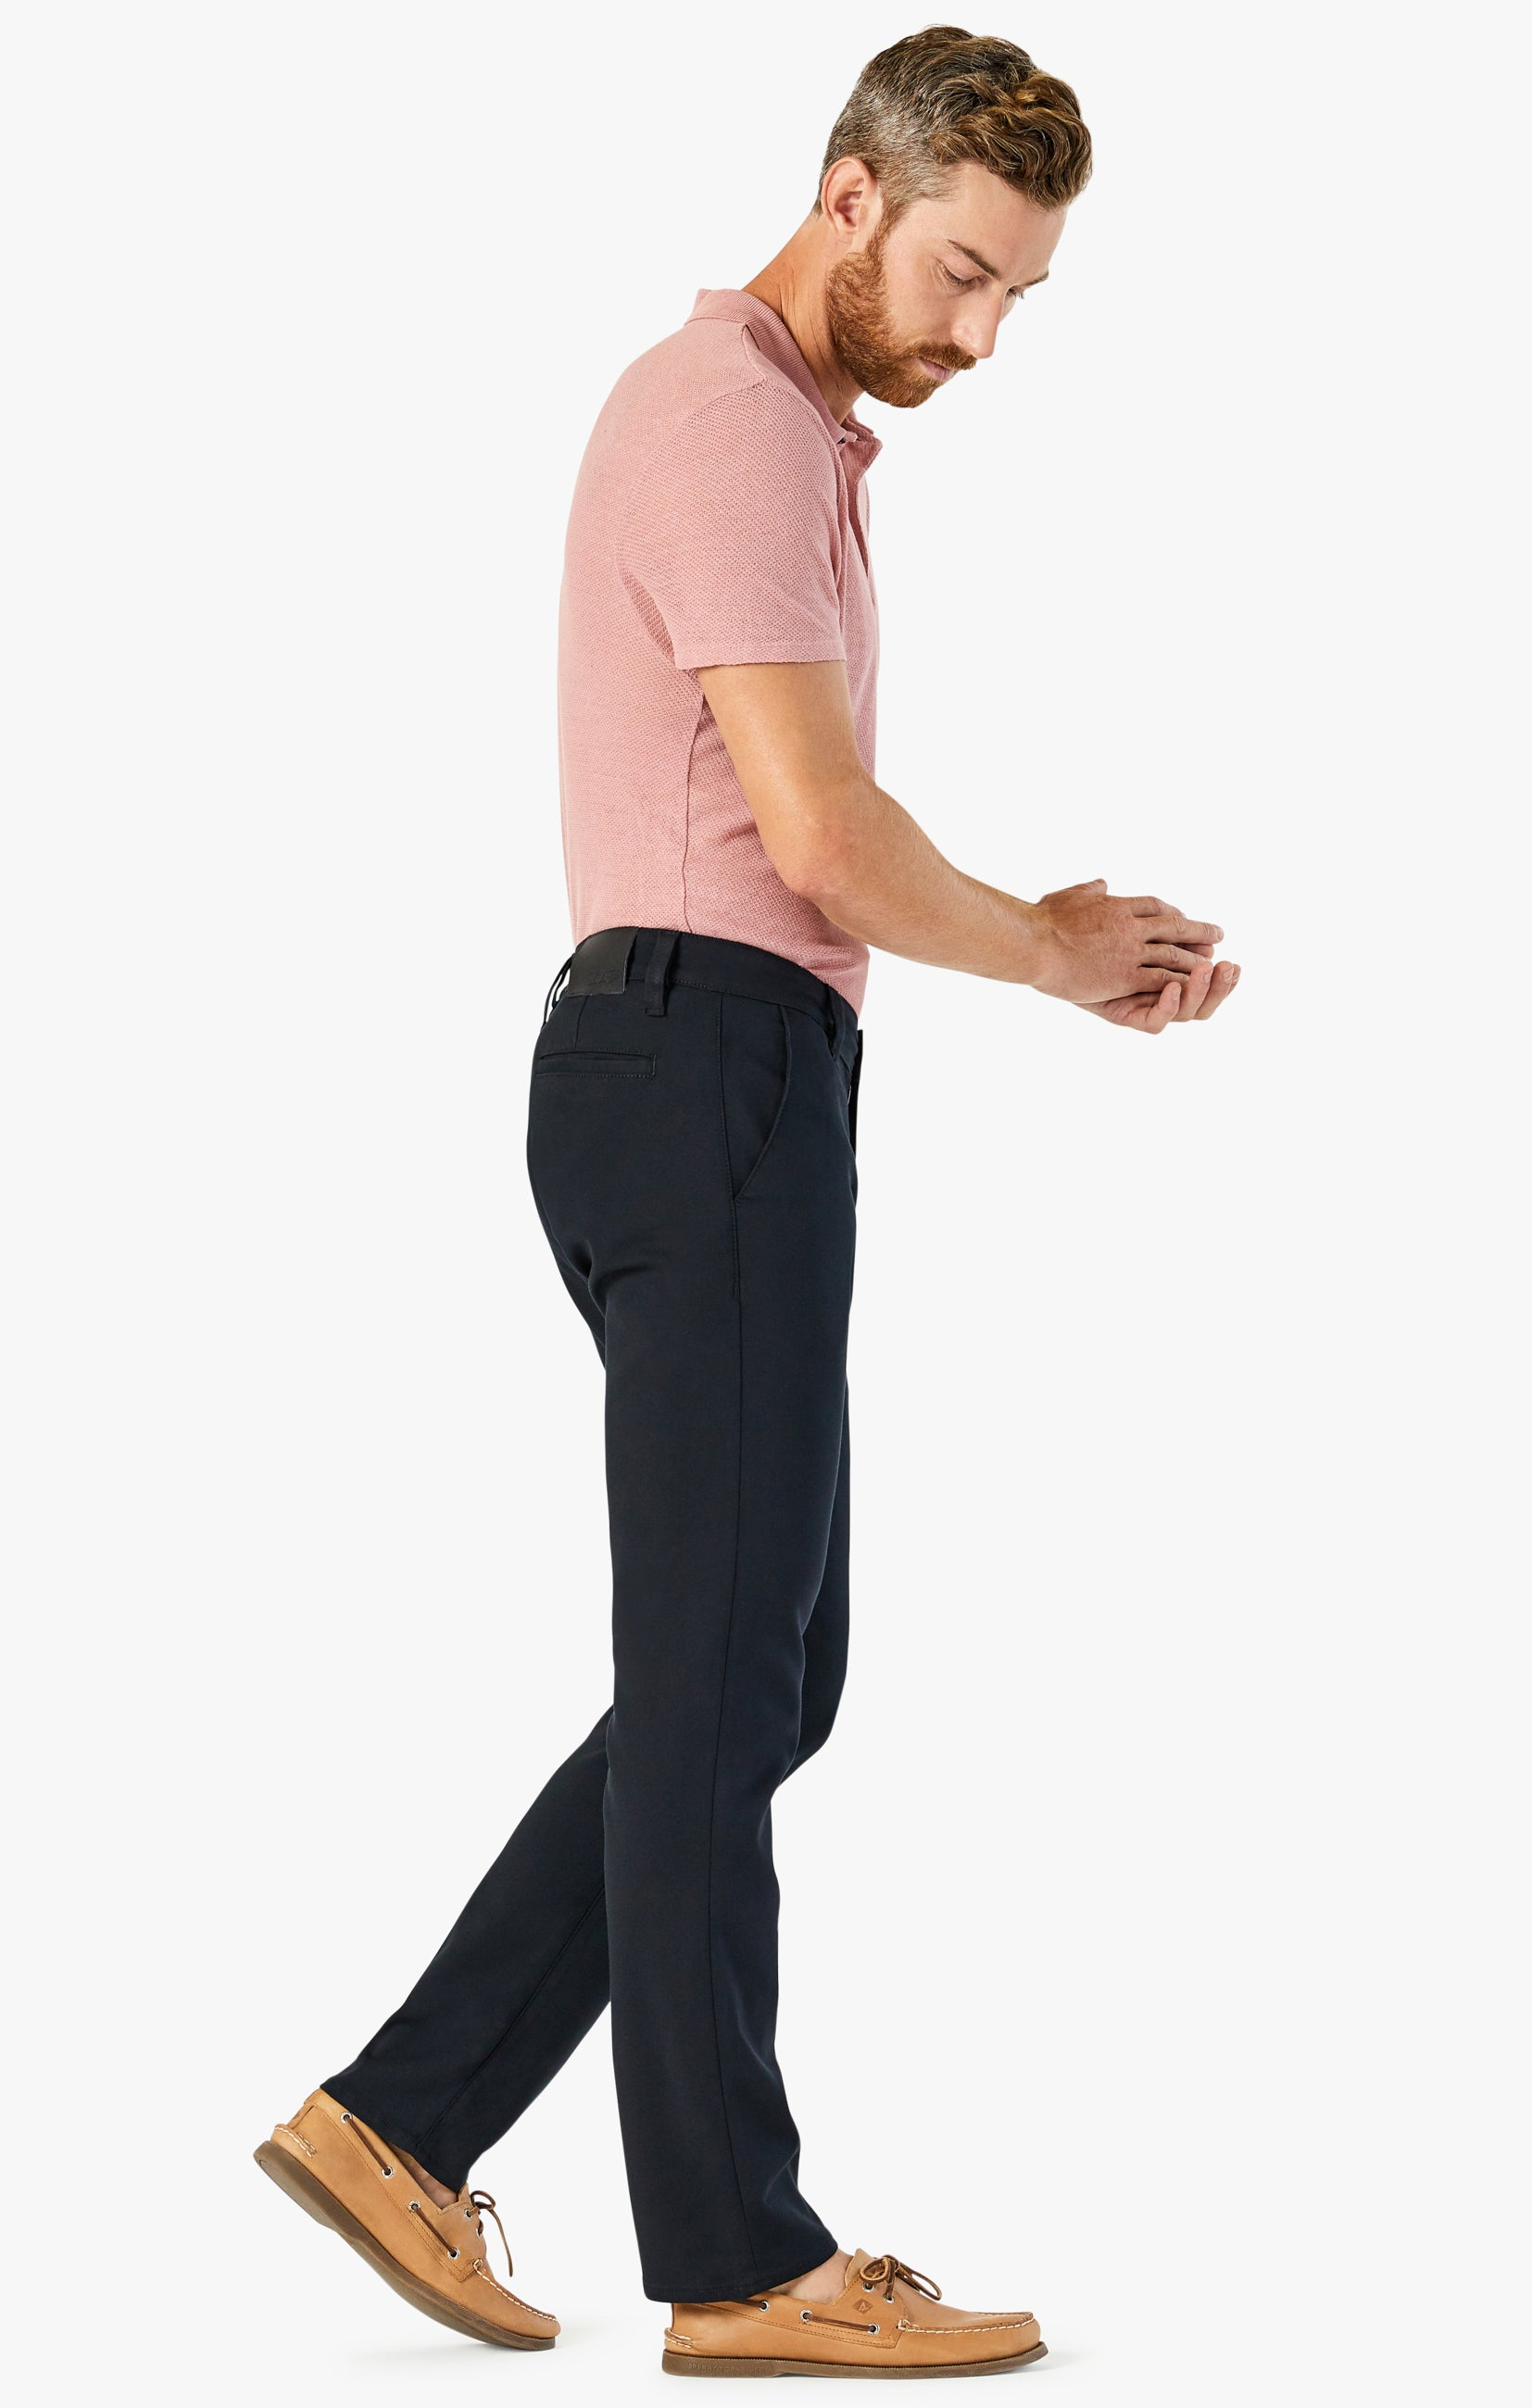 Verona Chino Pants in Black High Flyer Image 3